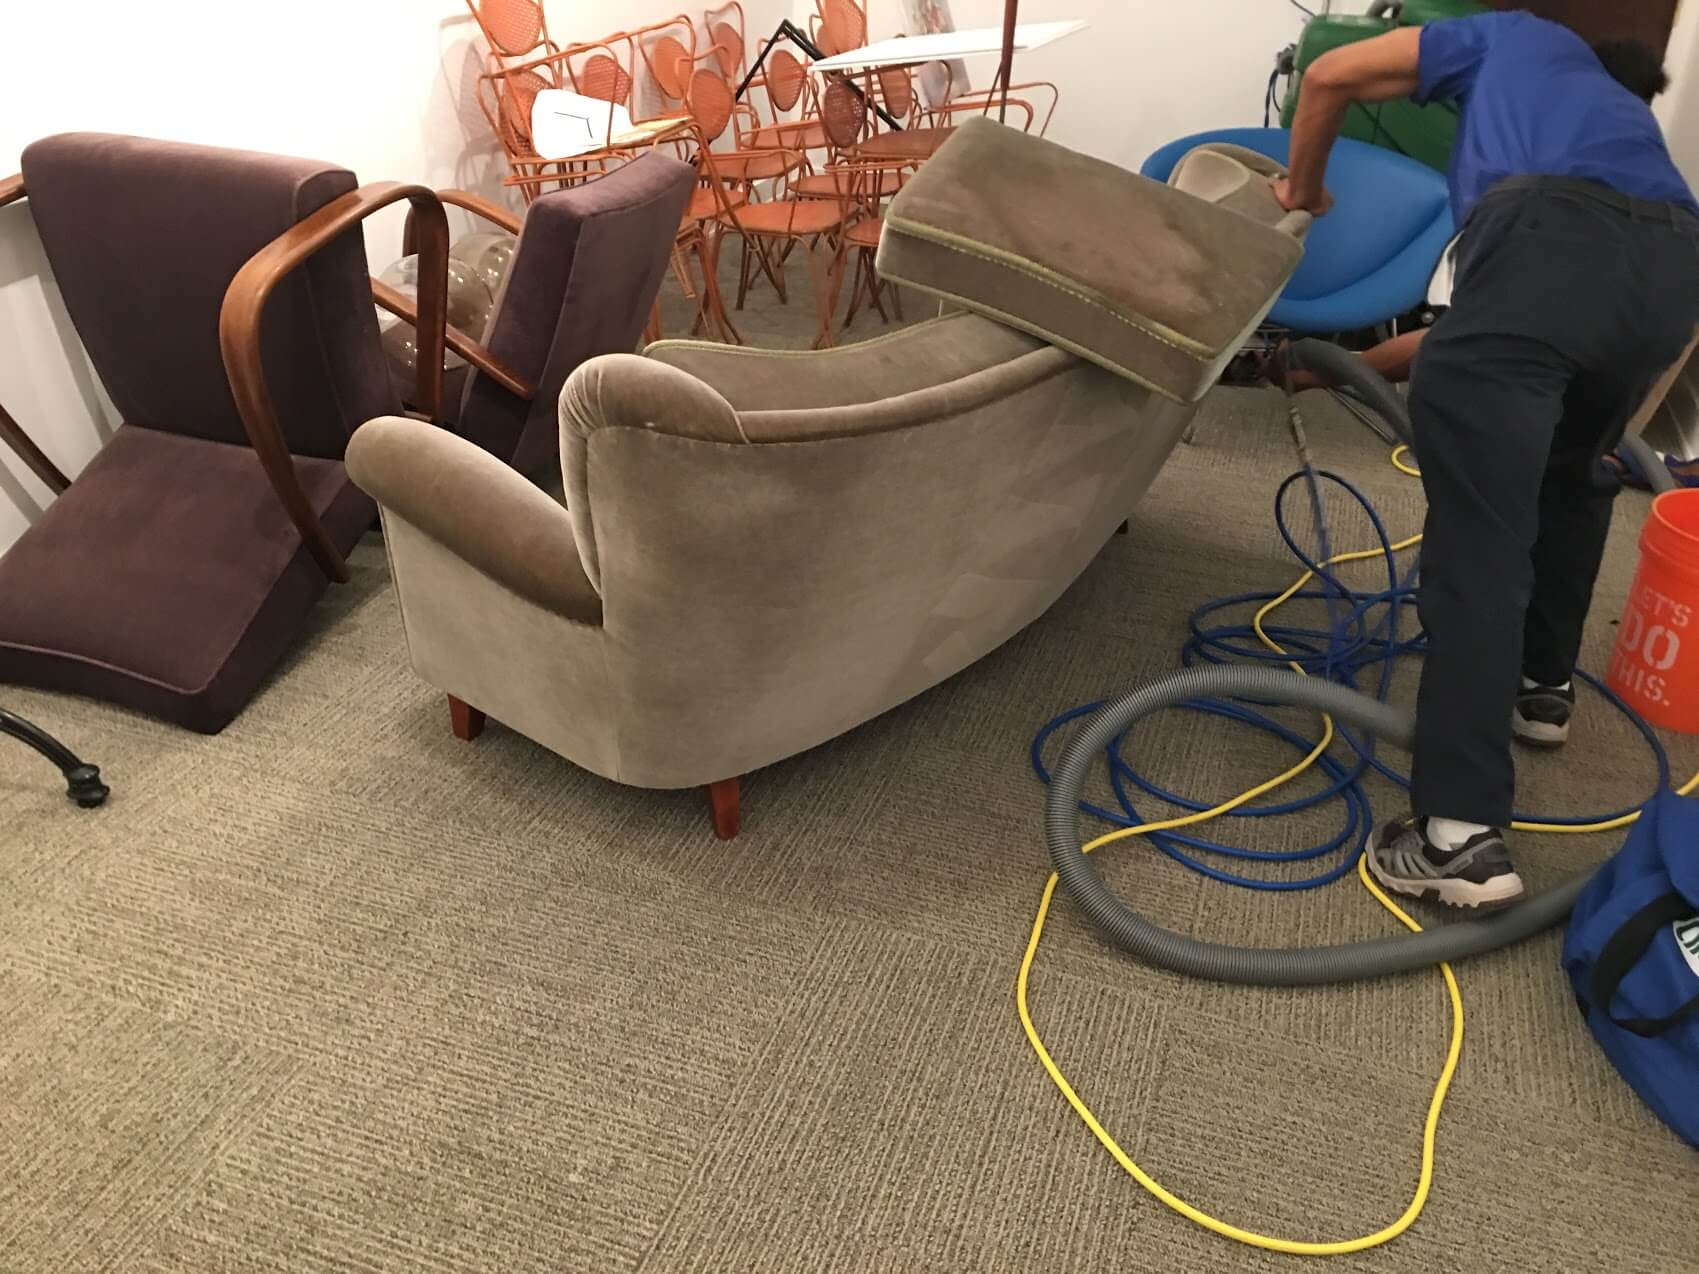 K&C Chem-Dry tech performing upholstery cleaning in forsyth county ga